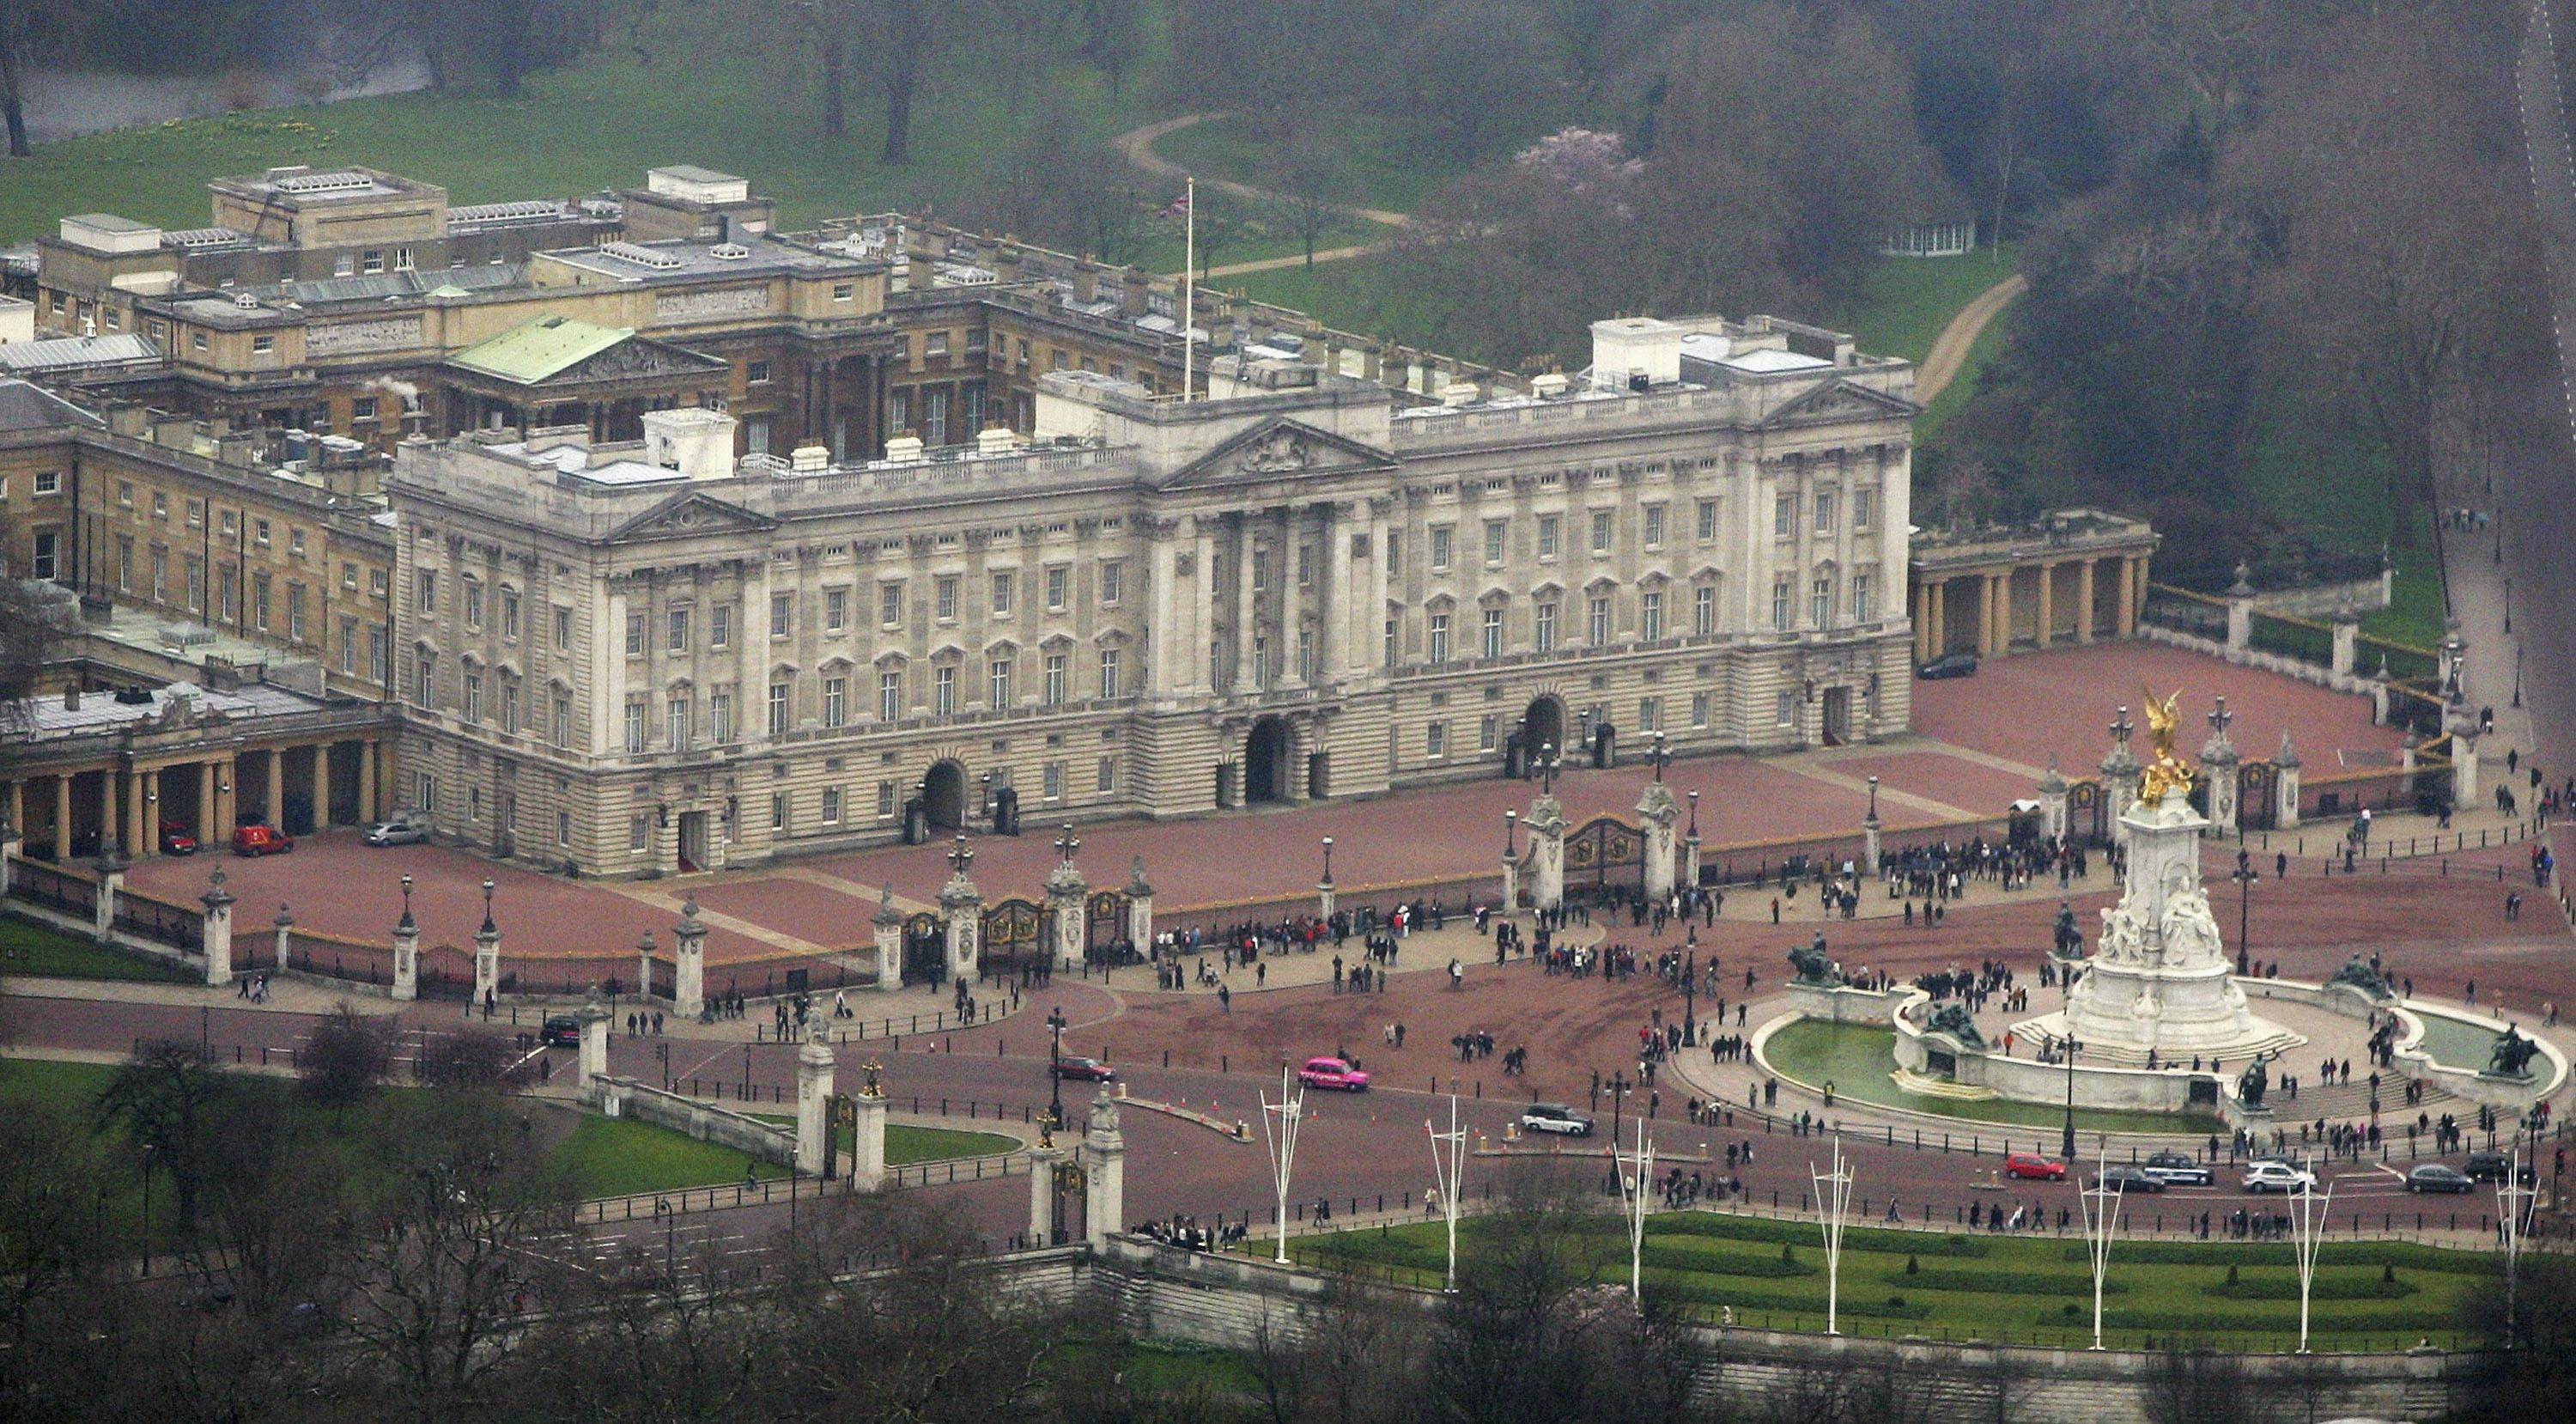 Buckingham Palace Aerial View